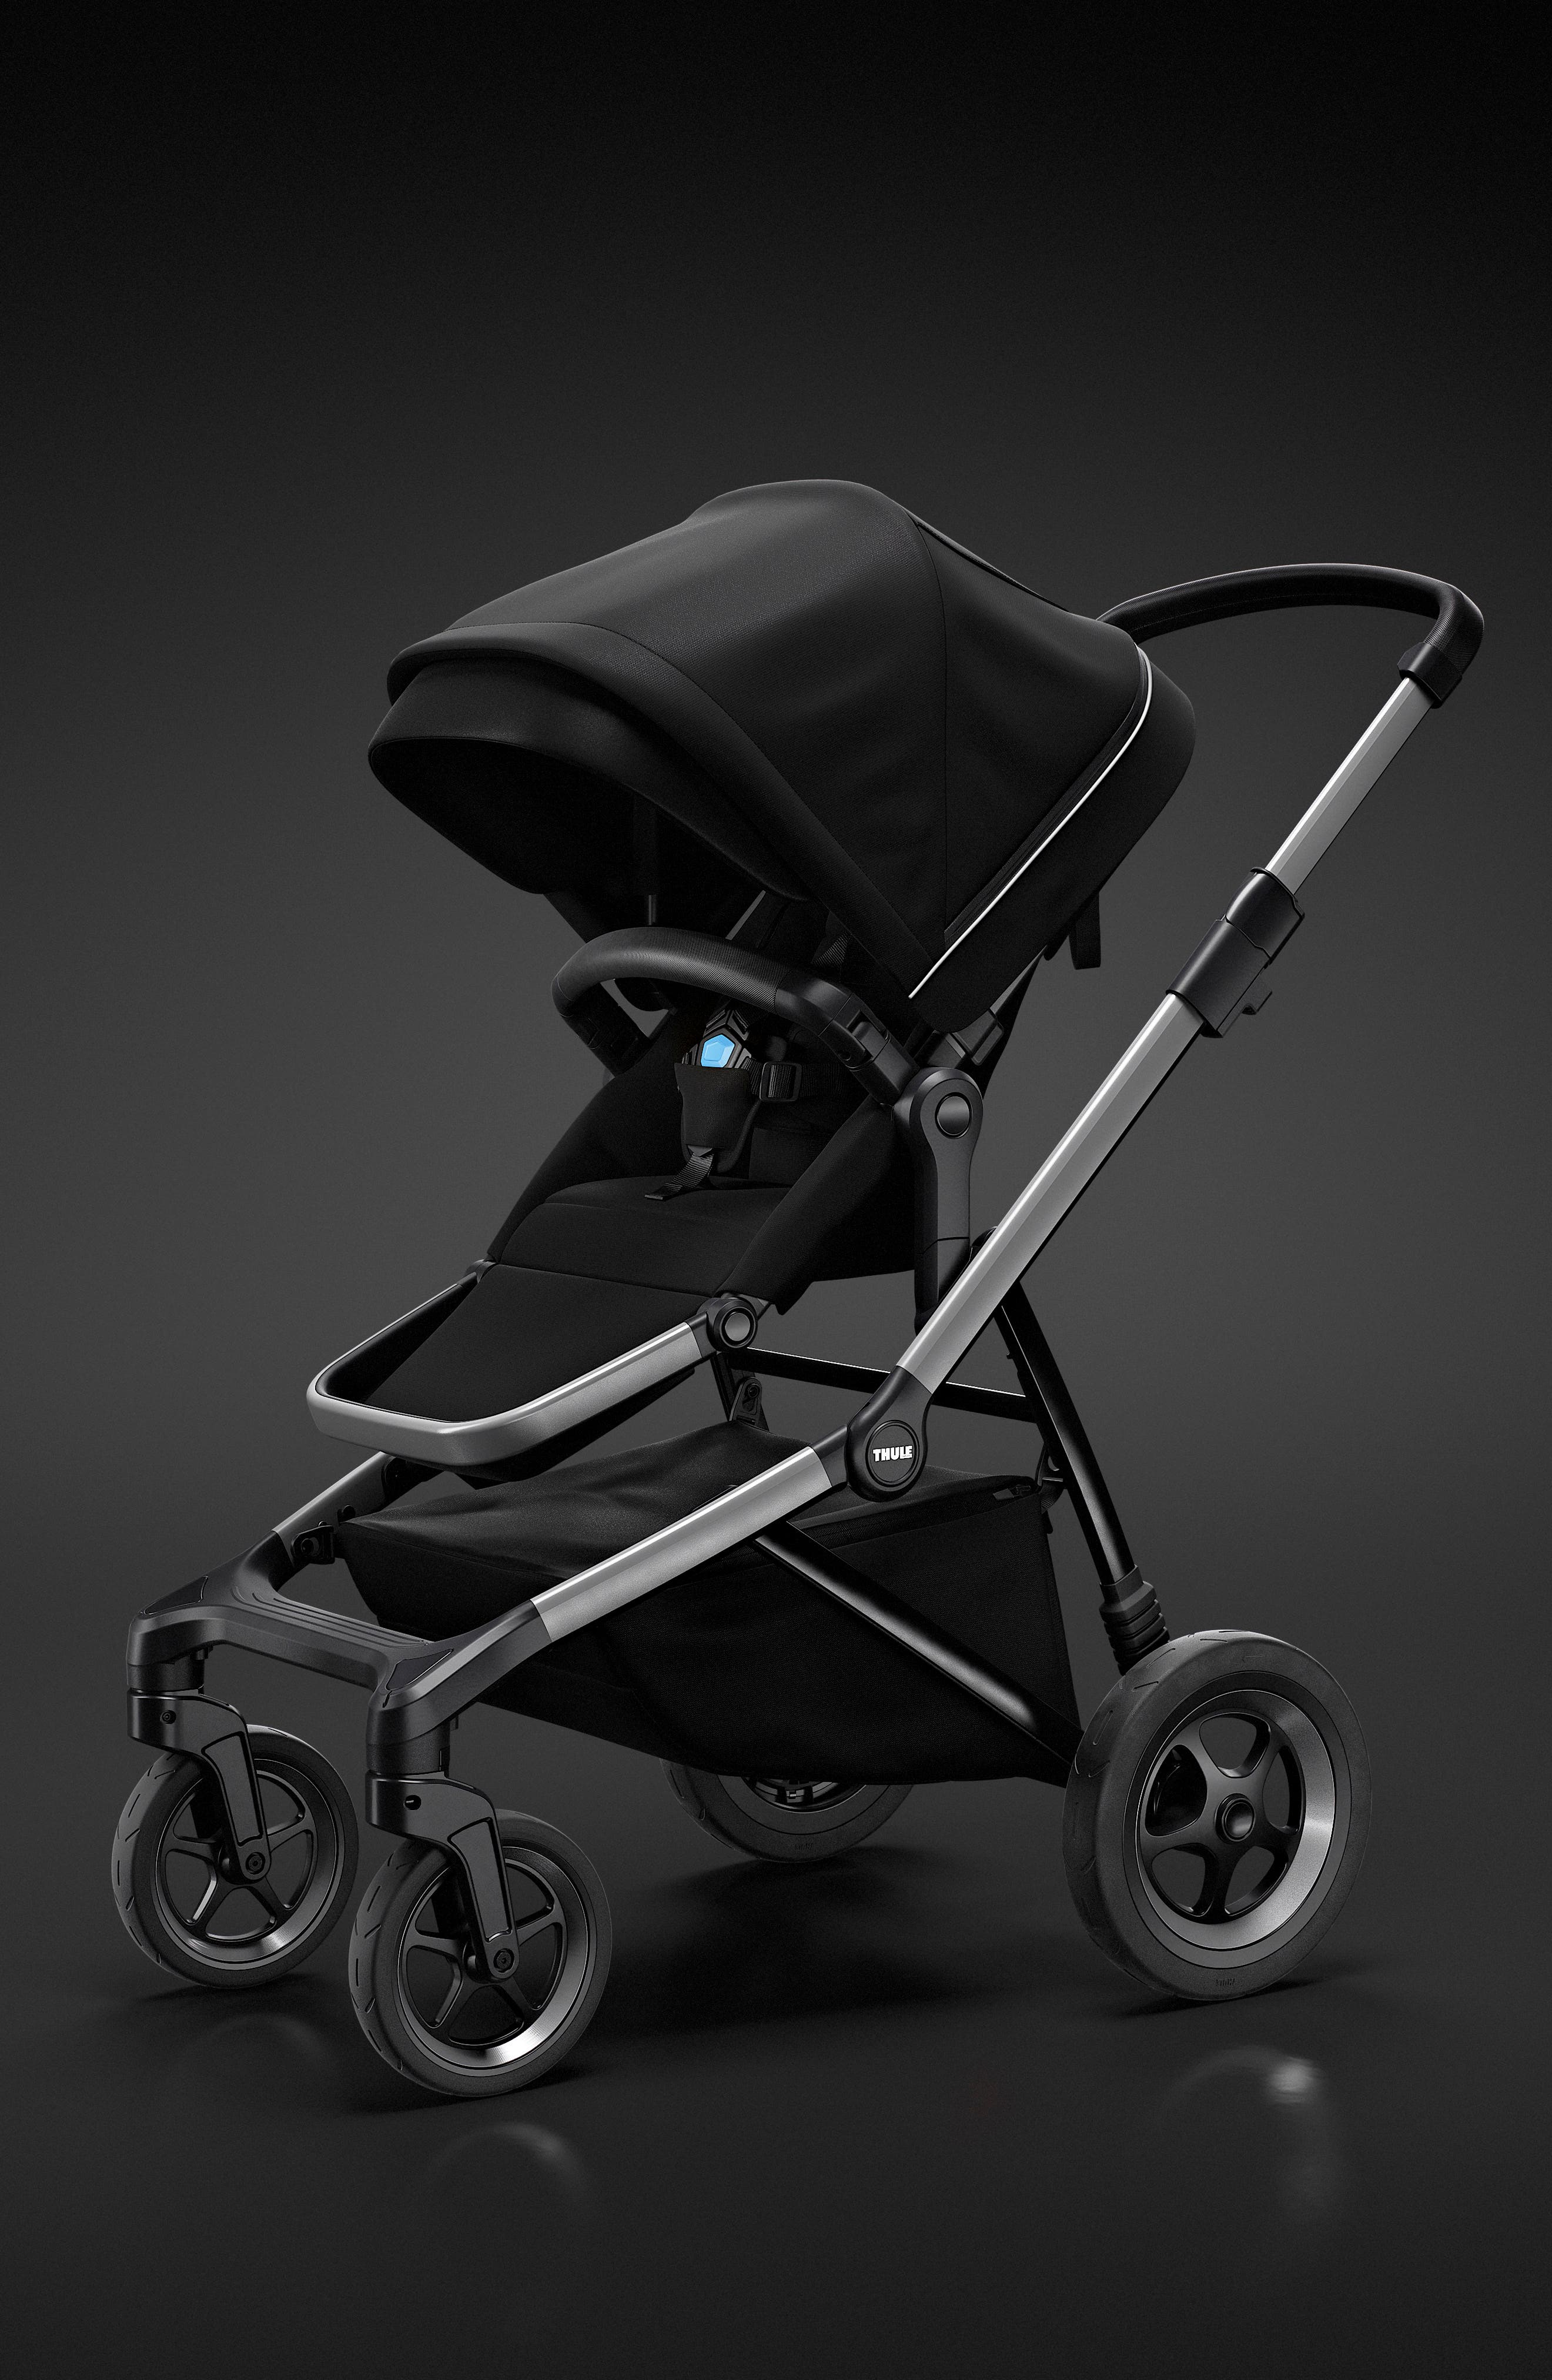 2018 Sleek City Stroller,                             Alternate thumbnail 9, color,                             BLACK